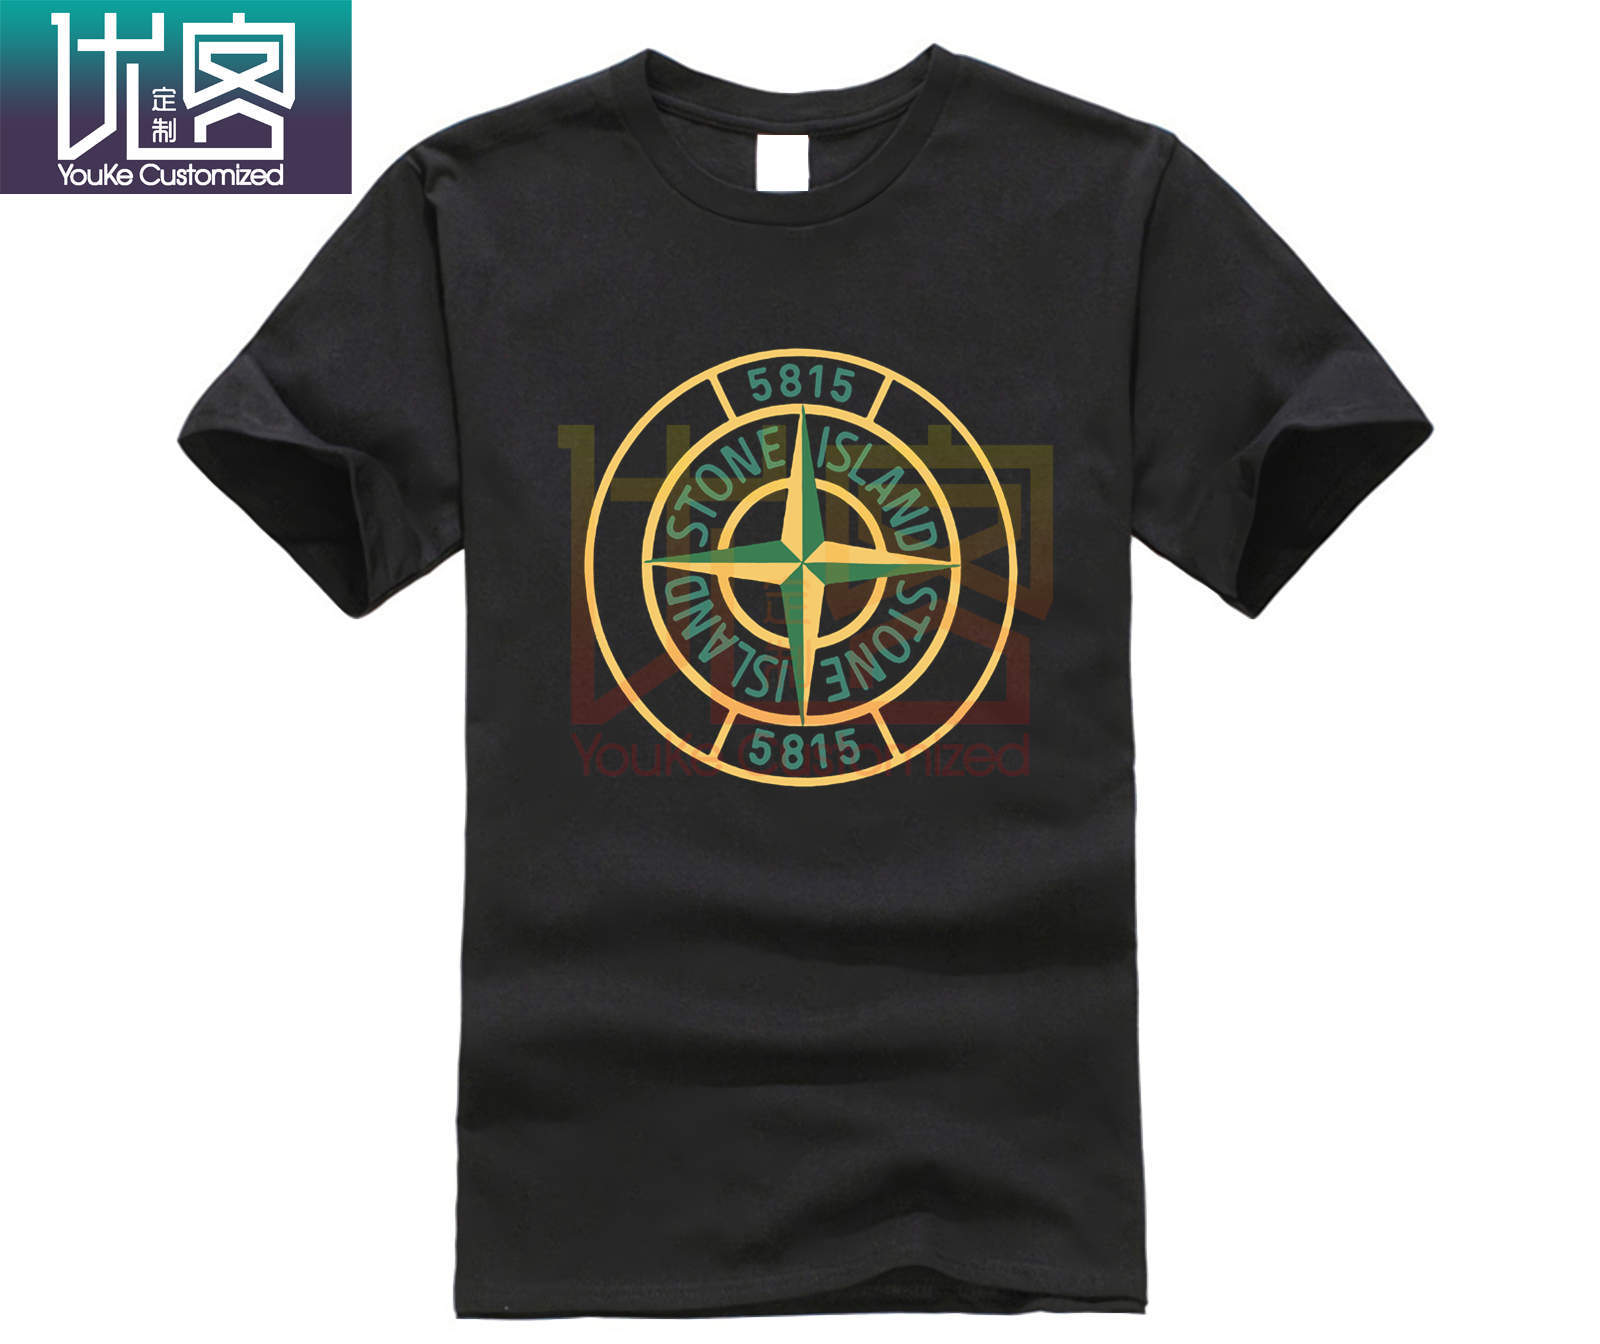 2020 Summer NEW Stone-Island T Shirt For Men Limitied Edition Men's Black Brand T-Shirt